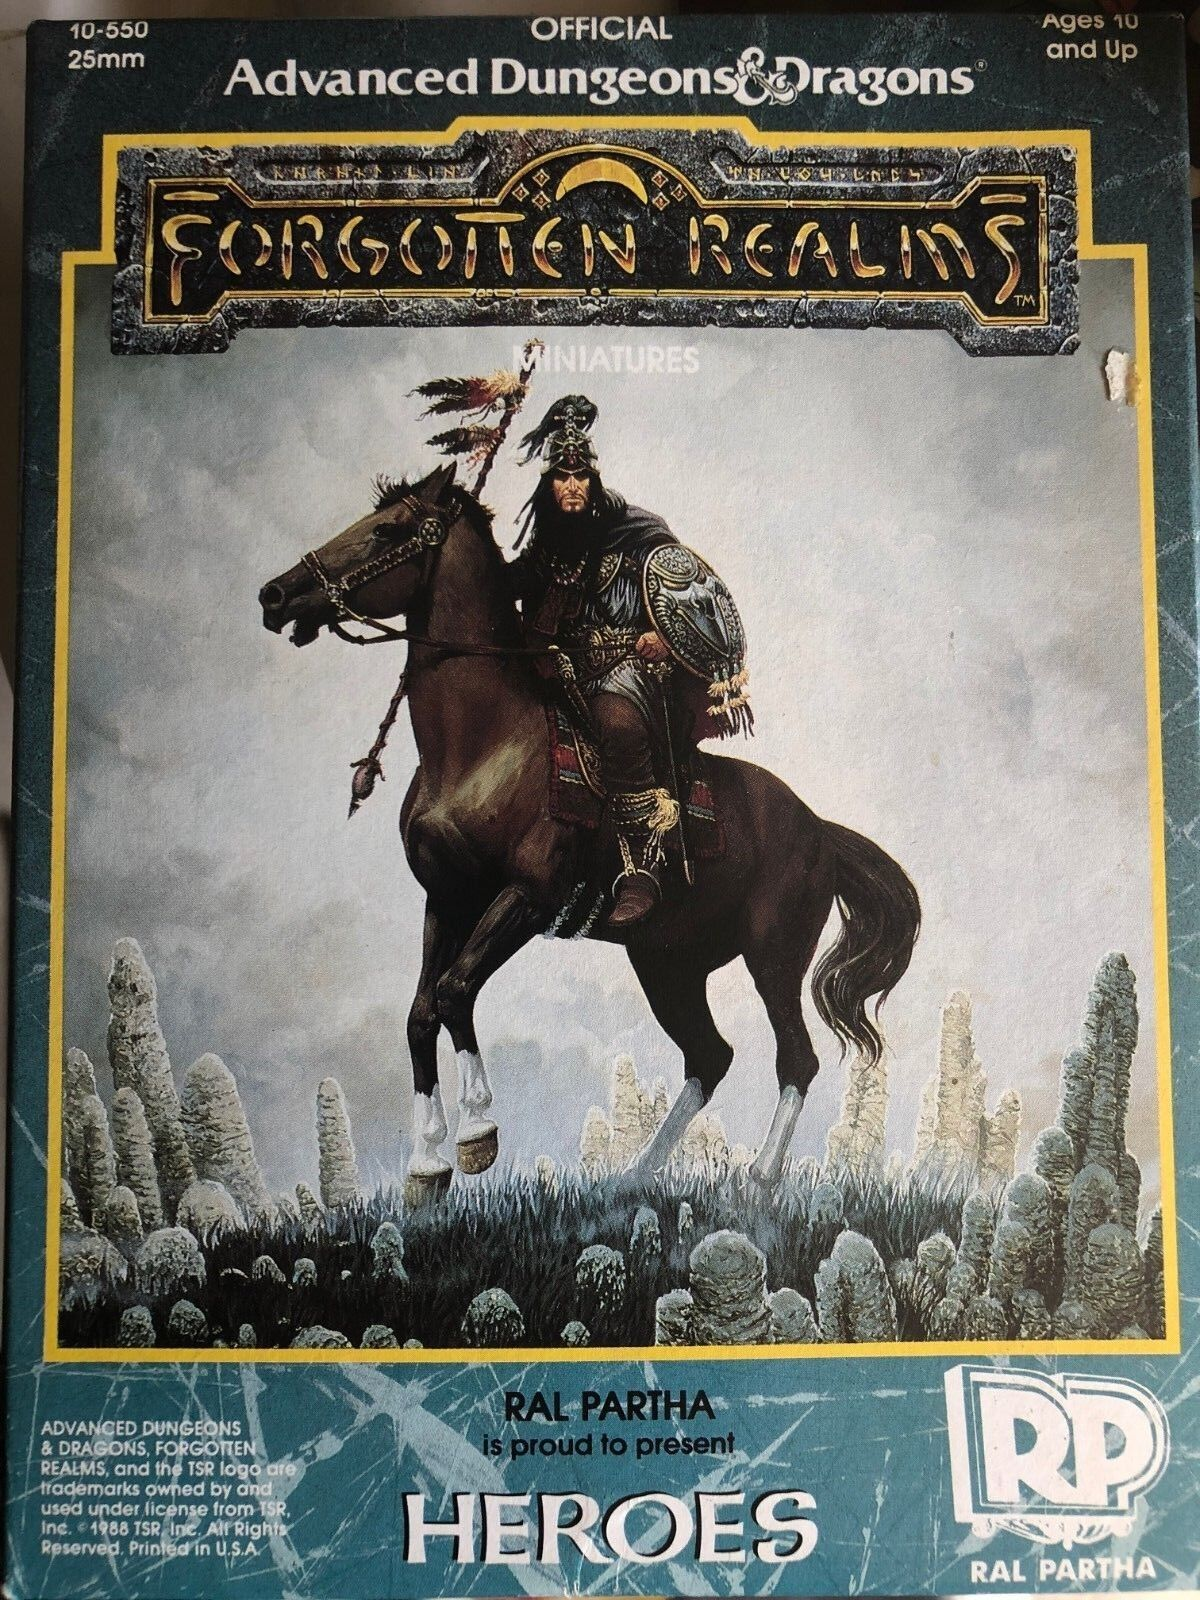 Ral Partha AD&D FORGOTTEN REALMS REALMS REALMS HEROES Box Set 10-550  Miniatures box - new 4c809e